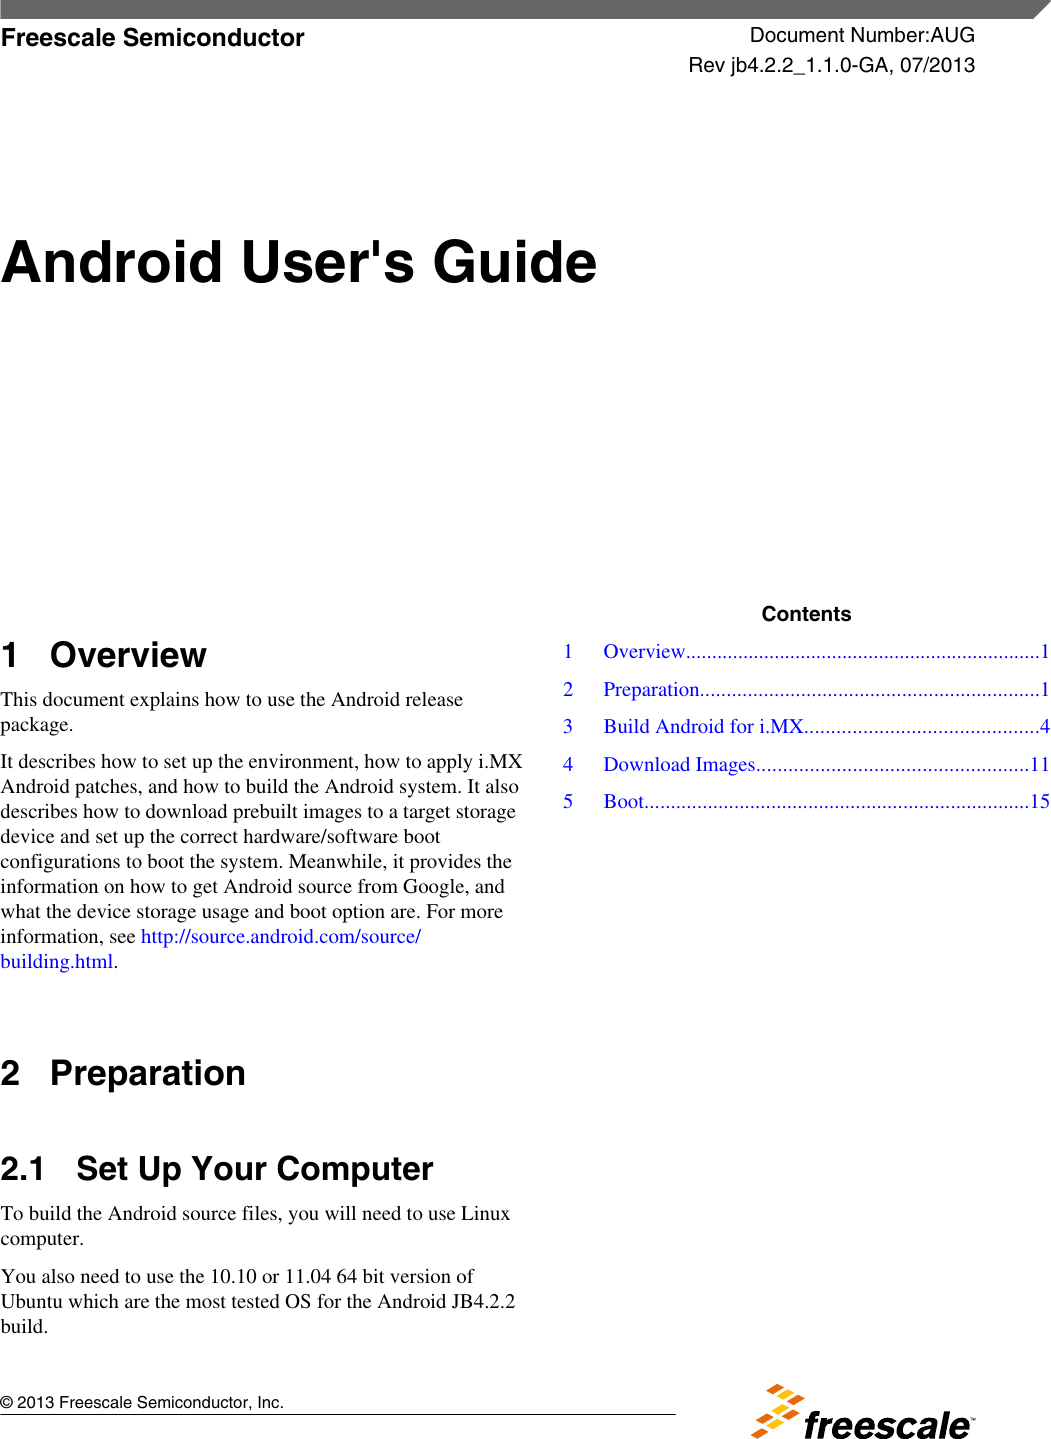 Android User's Guide User For SABRE SD